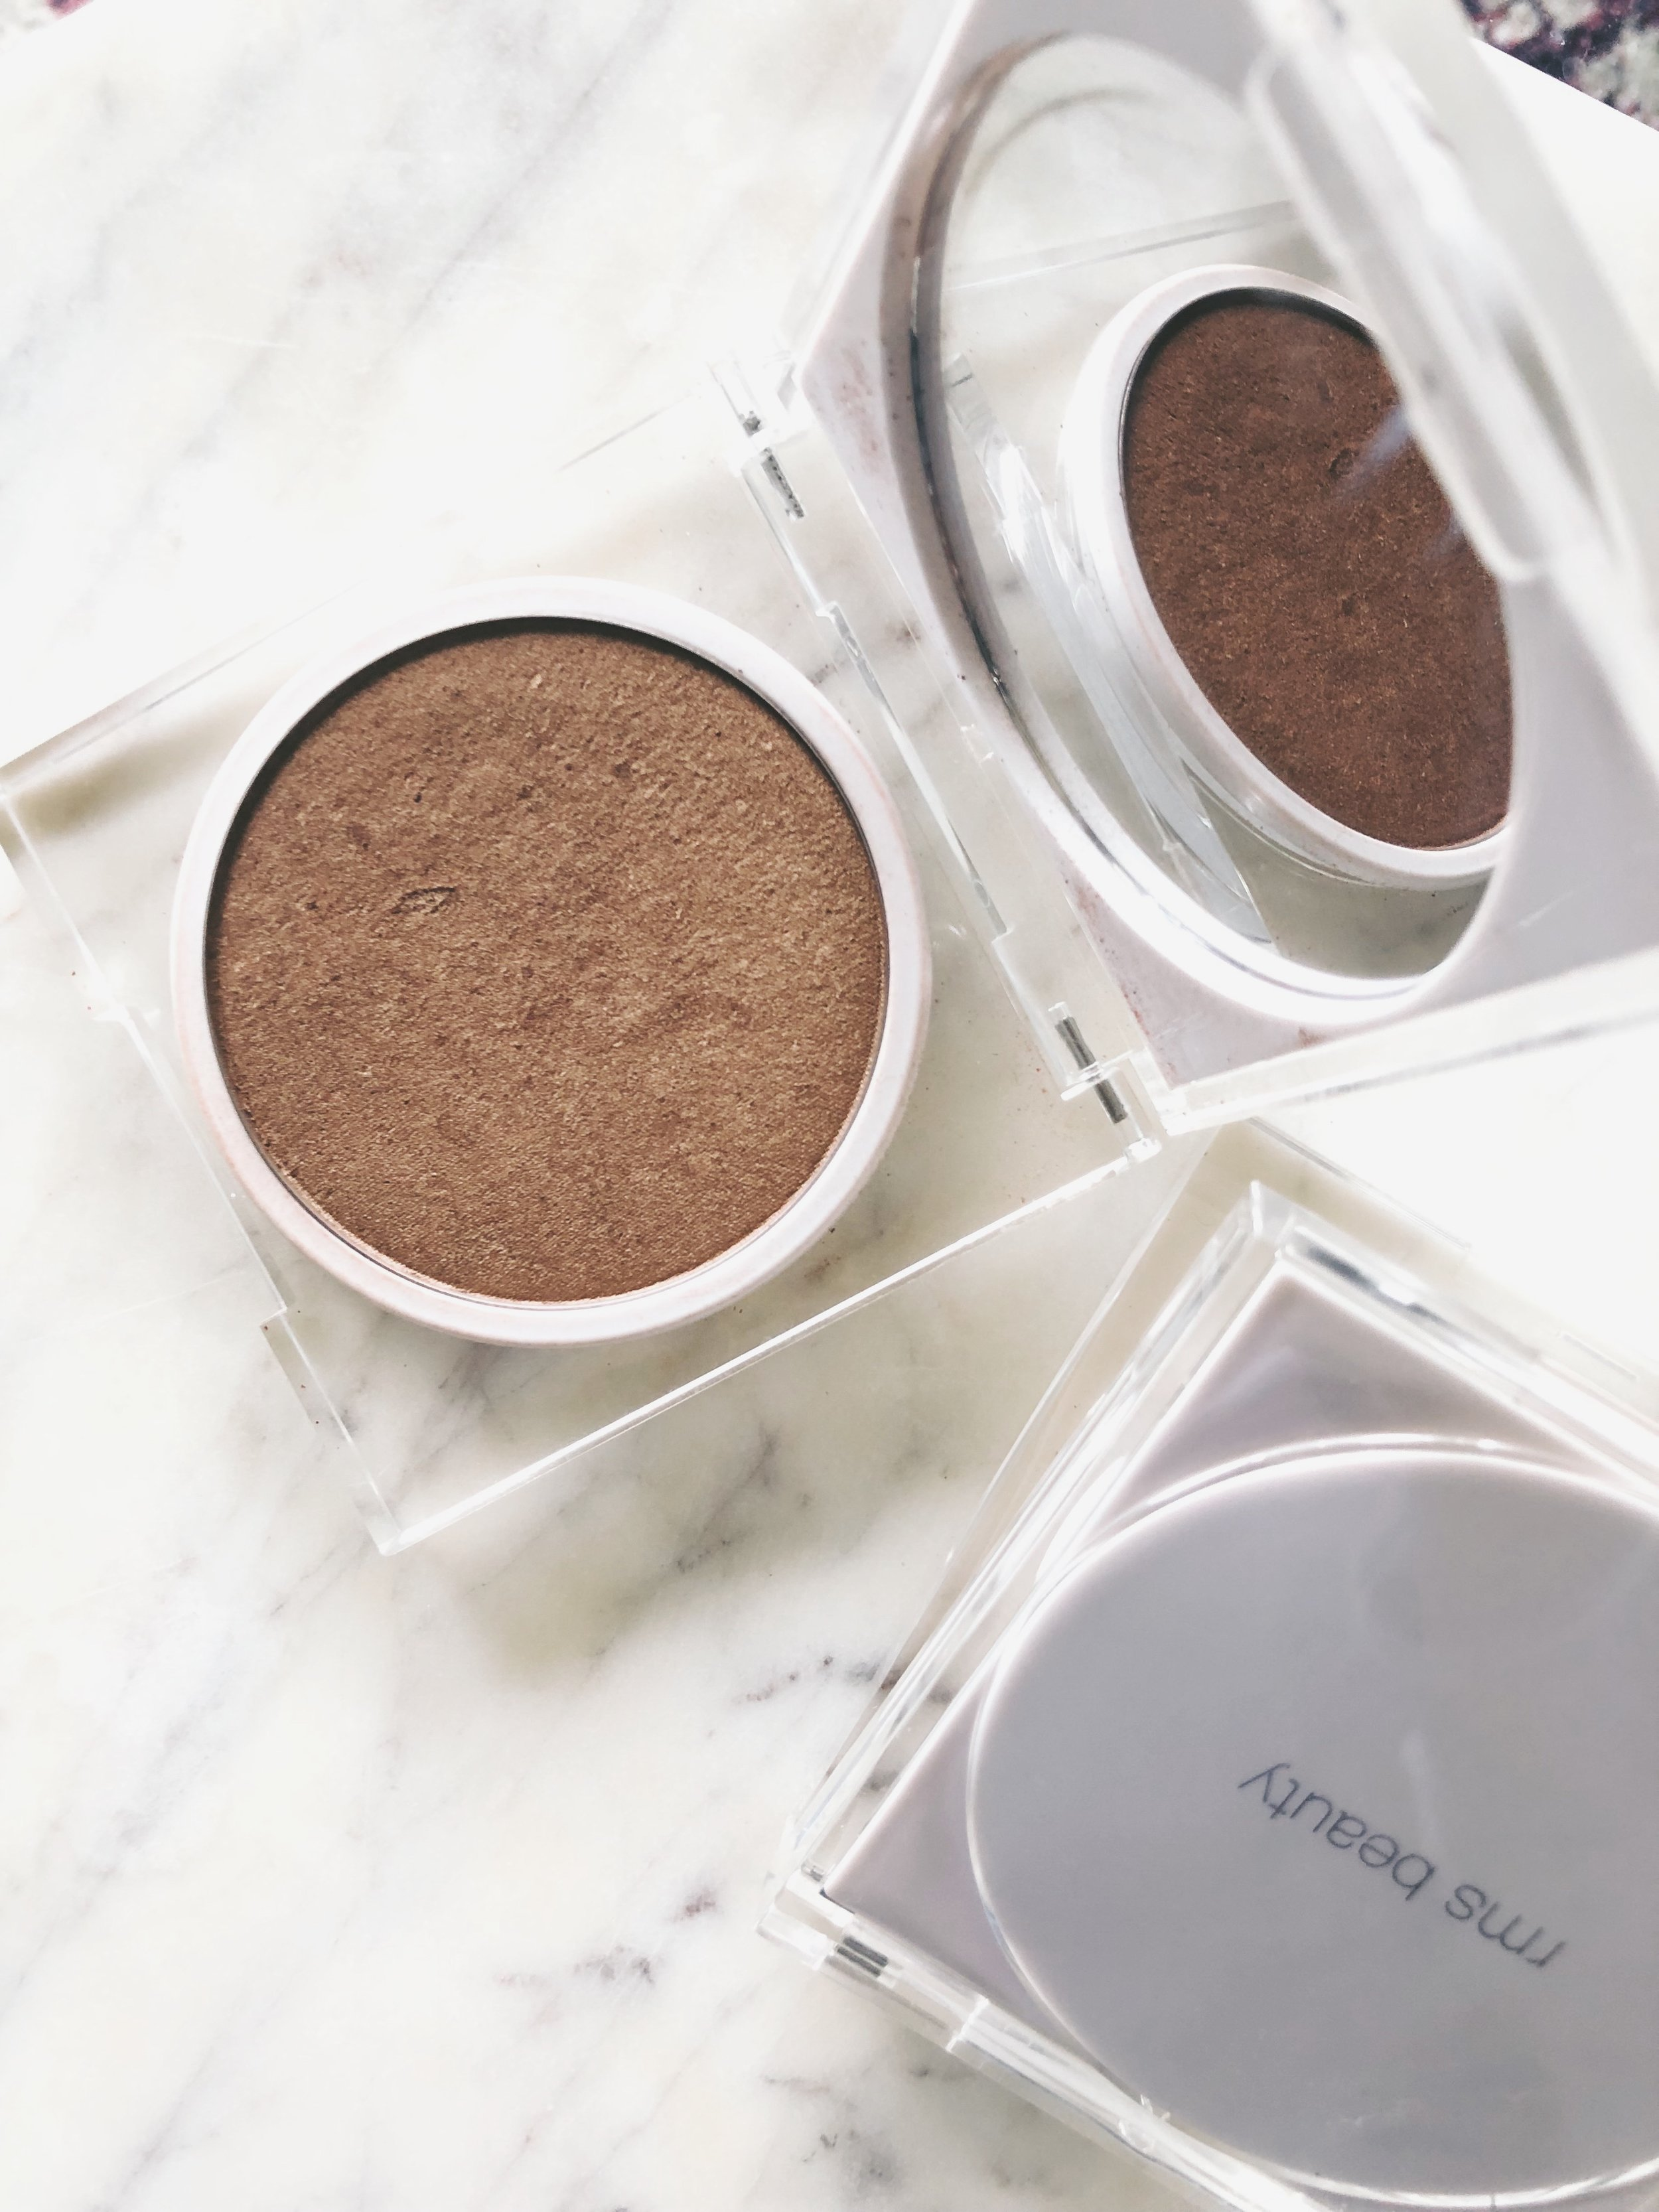 "RMS Beauty Luminizing Powders - $38 - Here's the quick SCORECARD breakdown. Each question is rated on a scale of 1 to 5, 5 being the best:1. How do the ingredients look (EWG.org ratings)?- 4: It ""may contain"" Titanium Dioxide. Zinc Stearate is the only other ingredient over a '1' that isn't in the 'may contain' list.2. How natural does this look?- 4: I have Midnight Hour (highlight) & Madeira Bronze. Both looked great, but there was a bit more metallic in the bronze so it had some subtle shine. The highlighter gave a great lit-from-within glow!3. Does it apply evenly?- 5: No issues here!4. Does it play well with other products?- 5: Absolutely went over products without causing any issues.5. Does it last all day?- 5: This can depend on other products you're wearing and skin type, but it lasted all day over foundation, under setting powder, and on combination skin.6. Is it non-irritating?- 57. How conscious is the brand? Cruelty free, sustainable, etc.- 3FINAL SCORE:31/35"